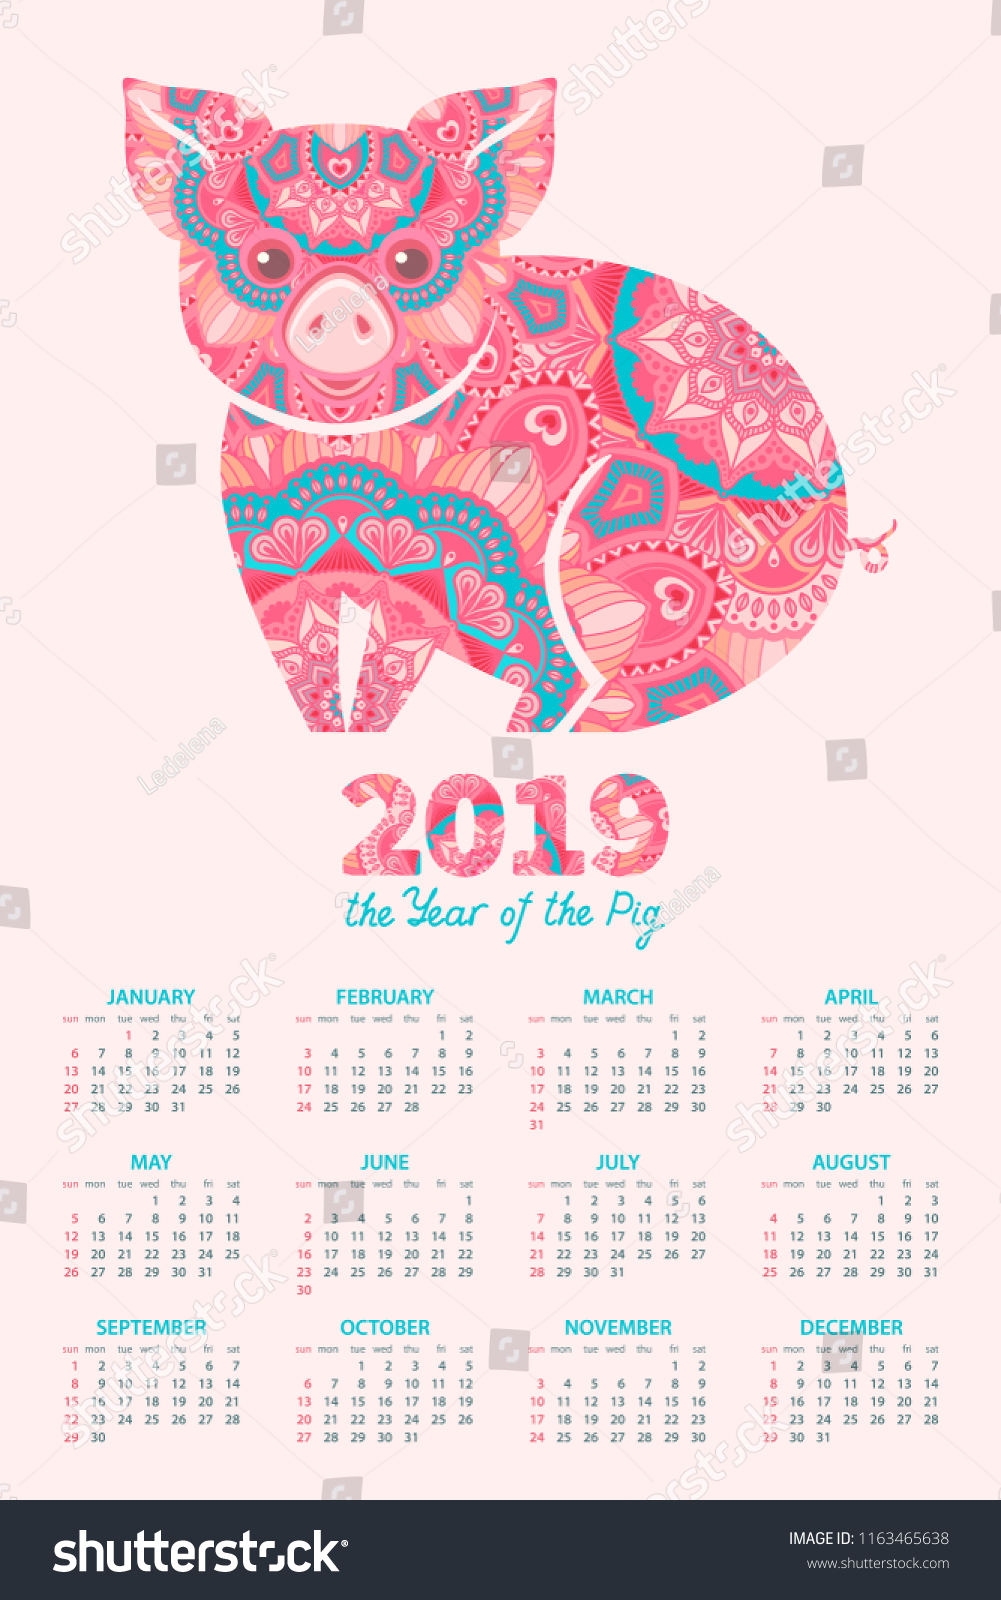 Calendar 2019 Pig Symbol 2019 Chinese Stock Vector (Royalty